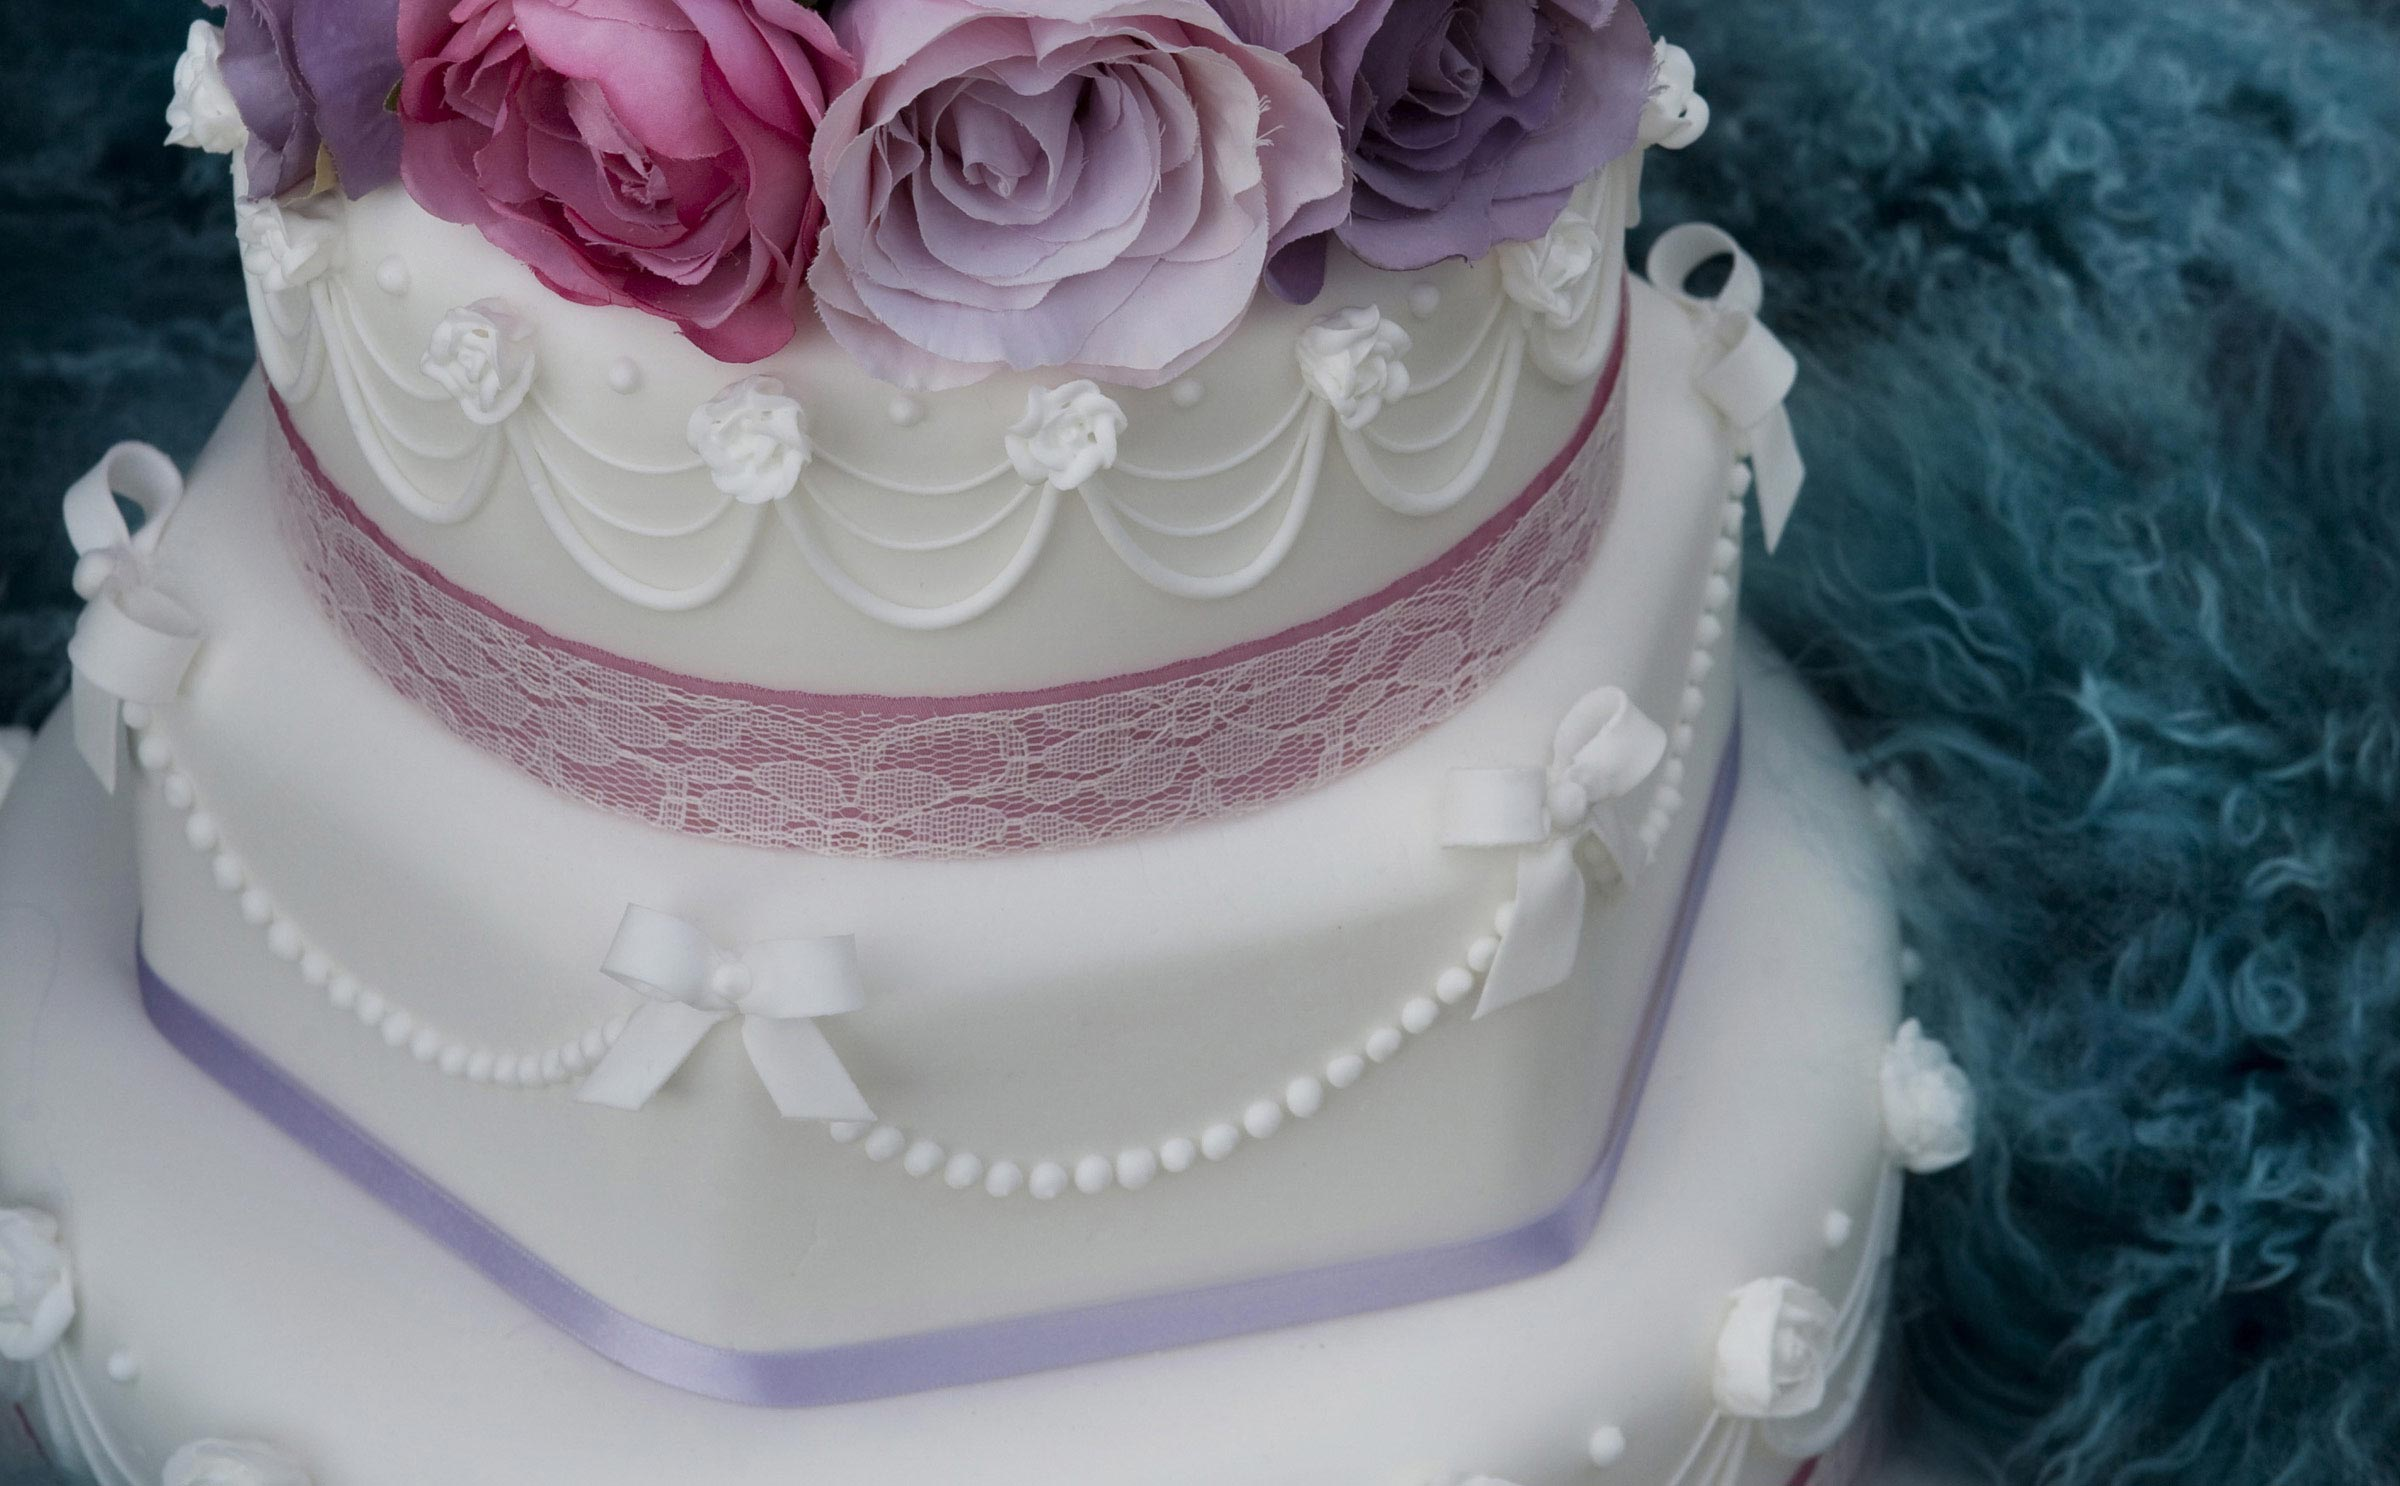 White, pinks and purple wedding cake